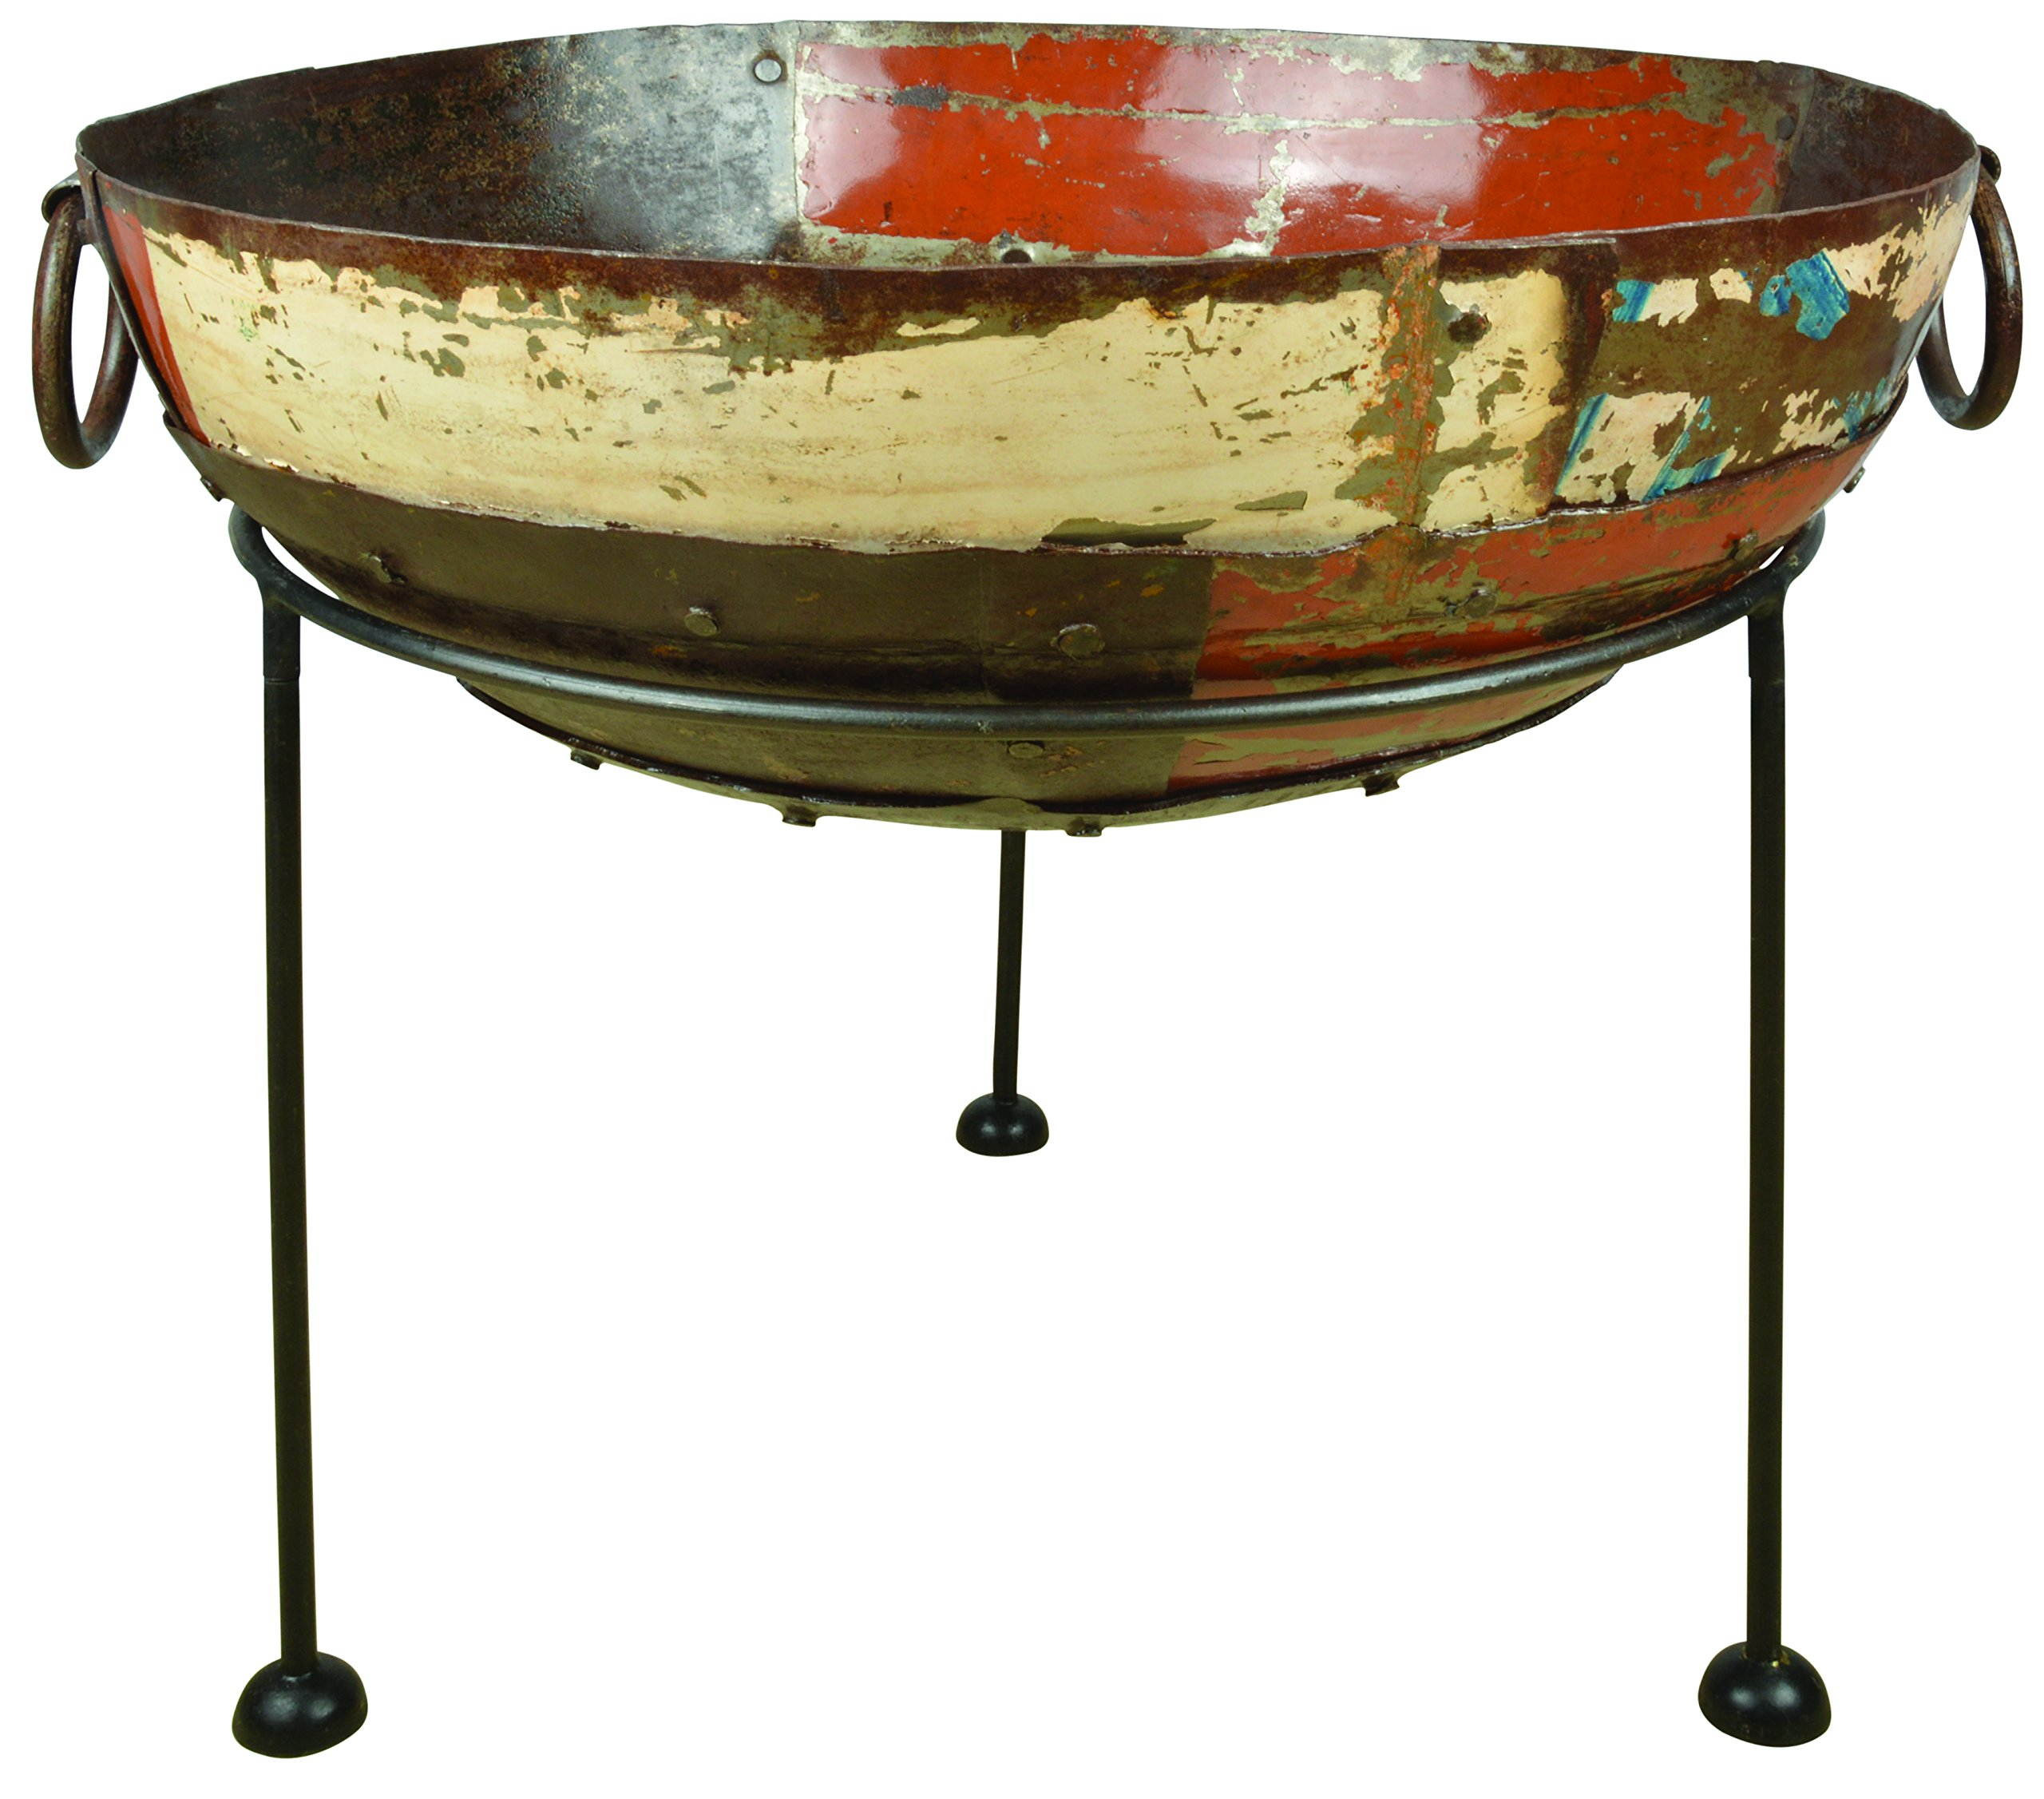 Esschert Design FF276 Series Fire Bowl Reclaimed Metal - Natural finish reclaimed metal is perfect for placement outdoors near a garden, patio, or in the yard With this large fire bowl on a stand you can sit around a roaring fire, anywhere, late into the night with friends Natural reclaimed metal - patio, outdoor-decor, fire-pits-outdoor-fireplaces - 81wUbmNzdgL -